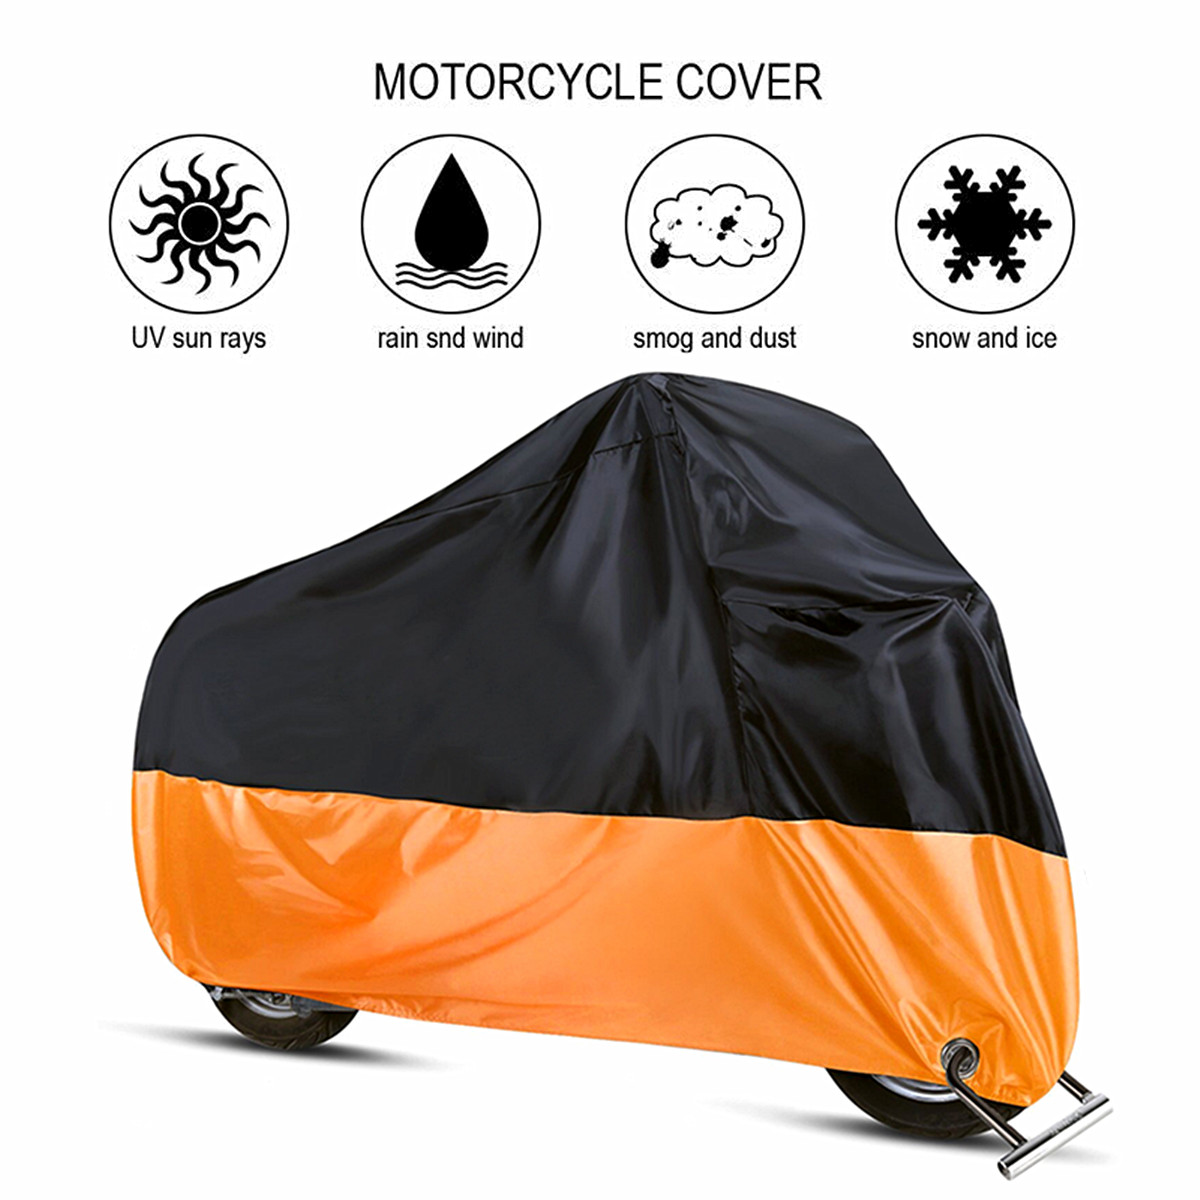 Waterproof Motorcycle Cover Protect Rain Dust UV Motocycle Case 190T Outdoor Motorbike Protector Elastic Hem L/XL/2XL/3XL/4XL